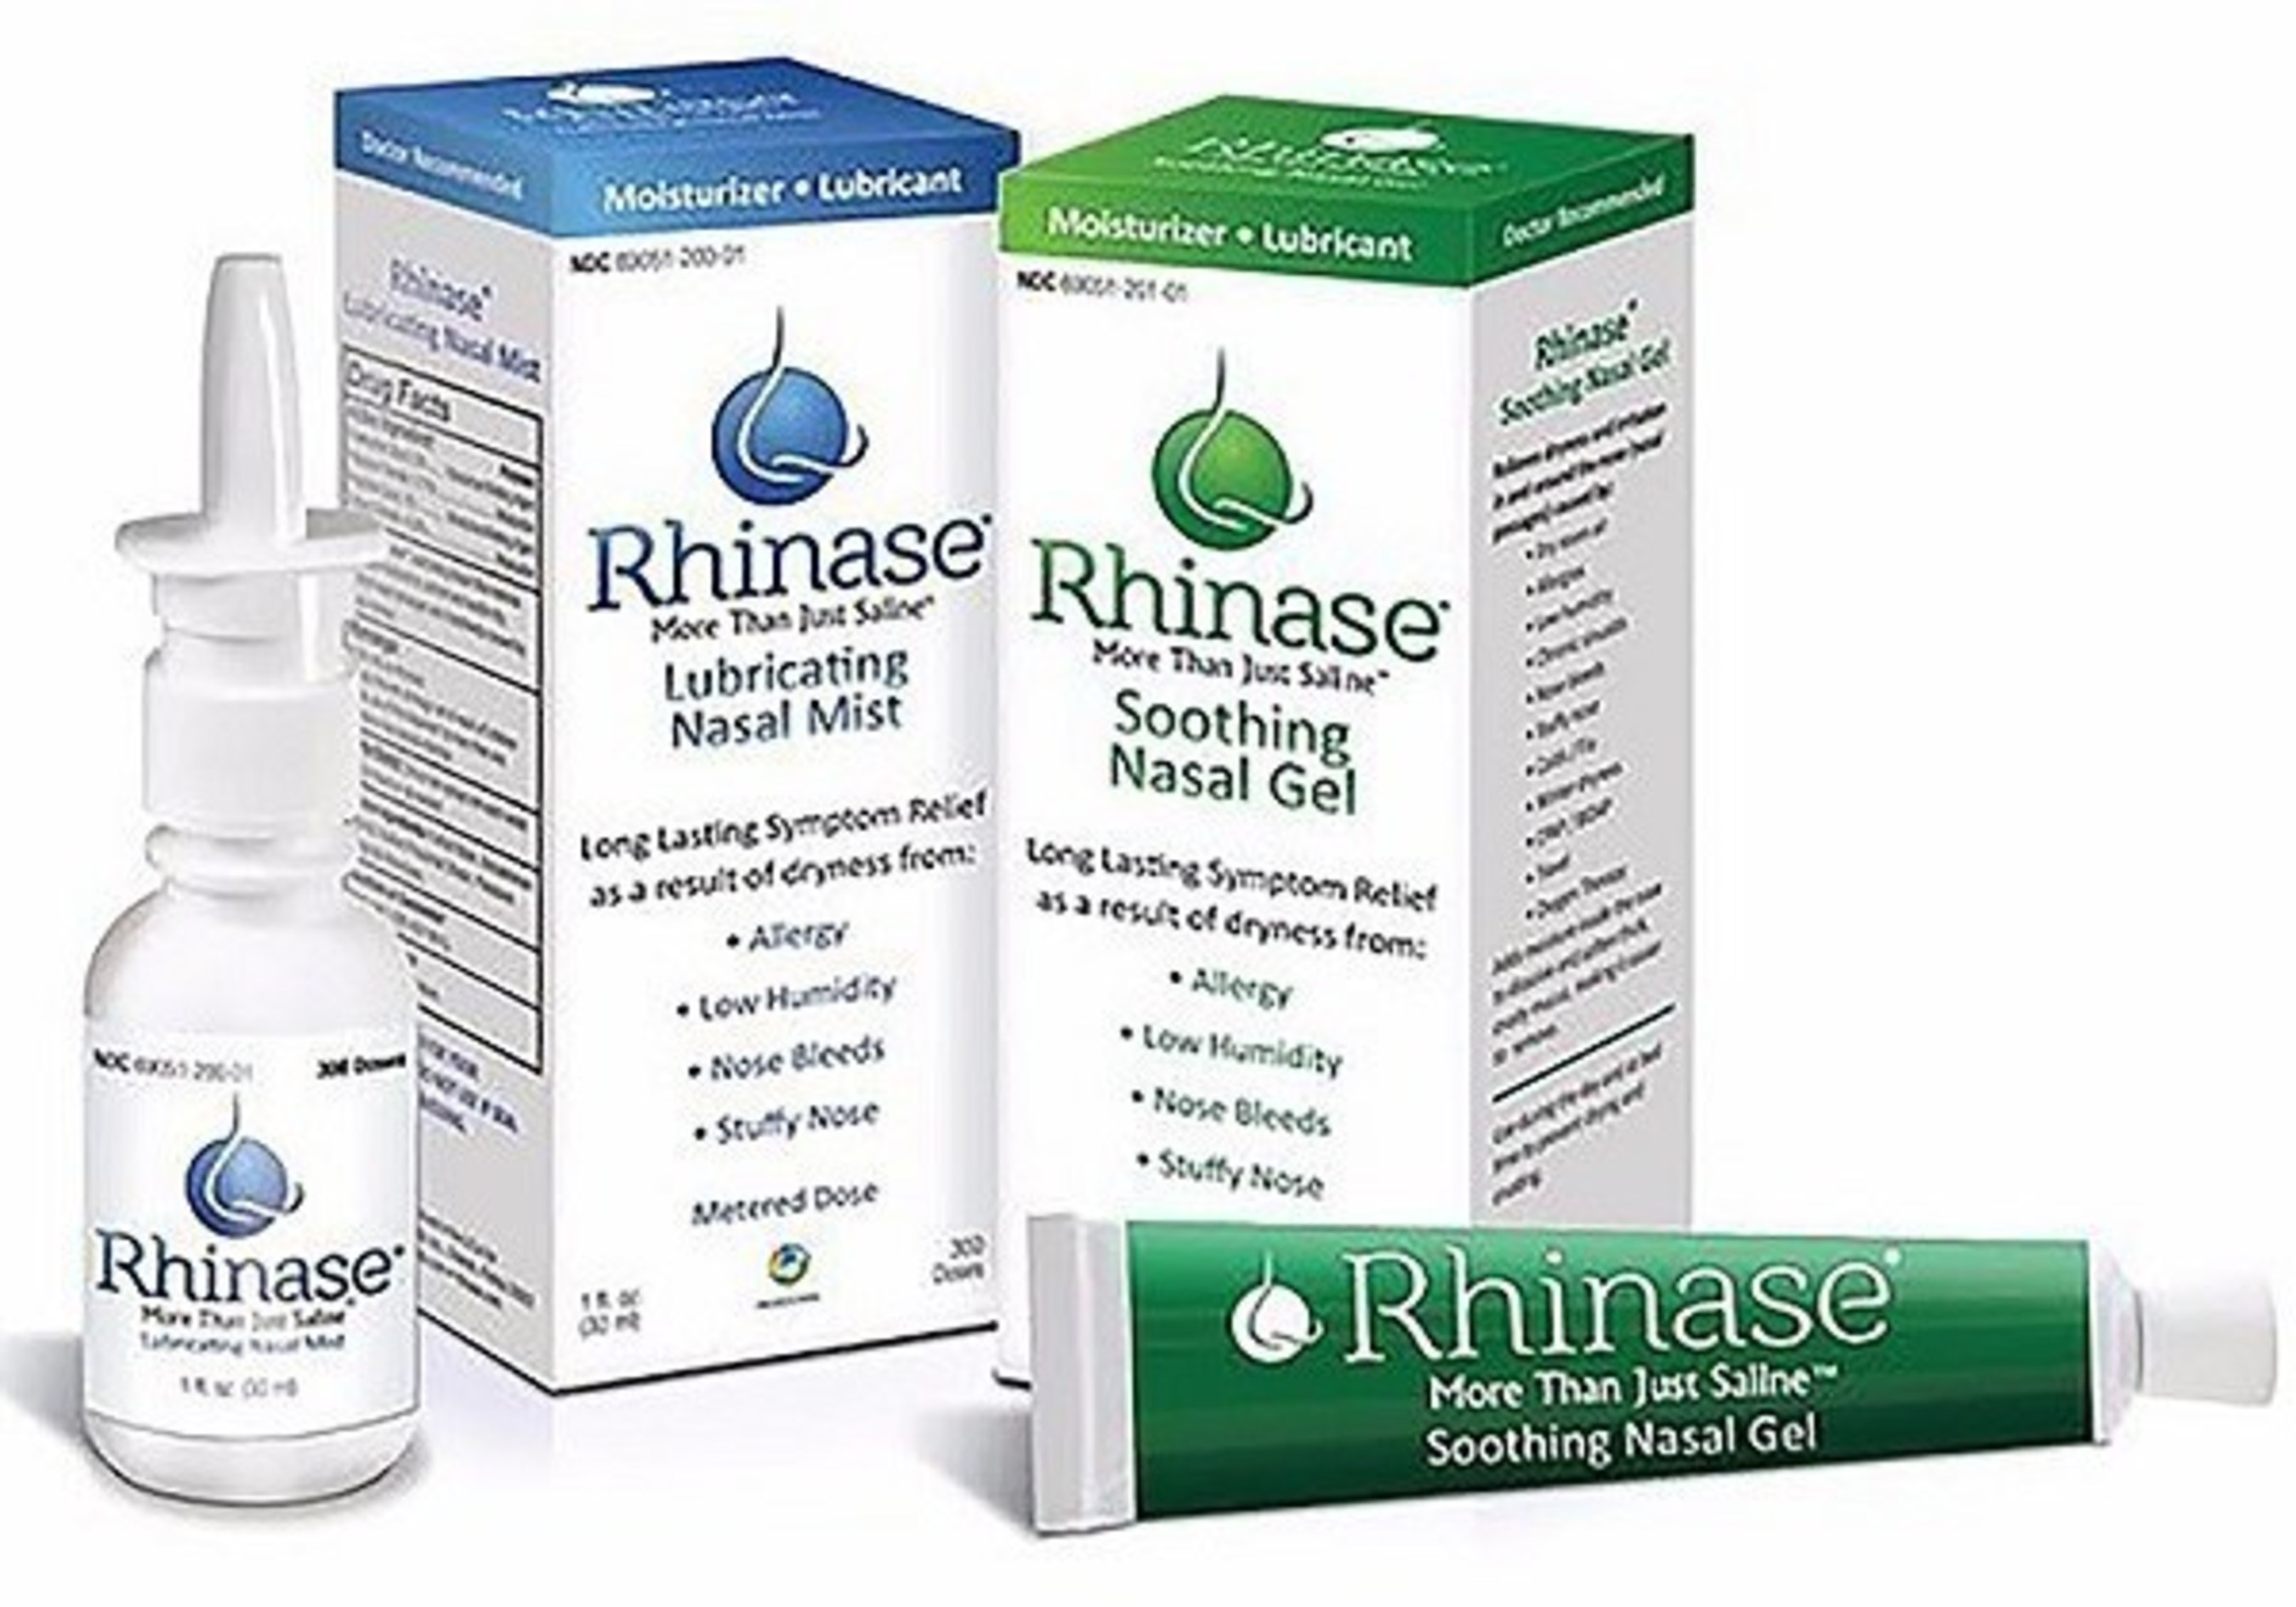 RHINASE NASAL MOISTURIZING PRODUCTS